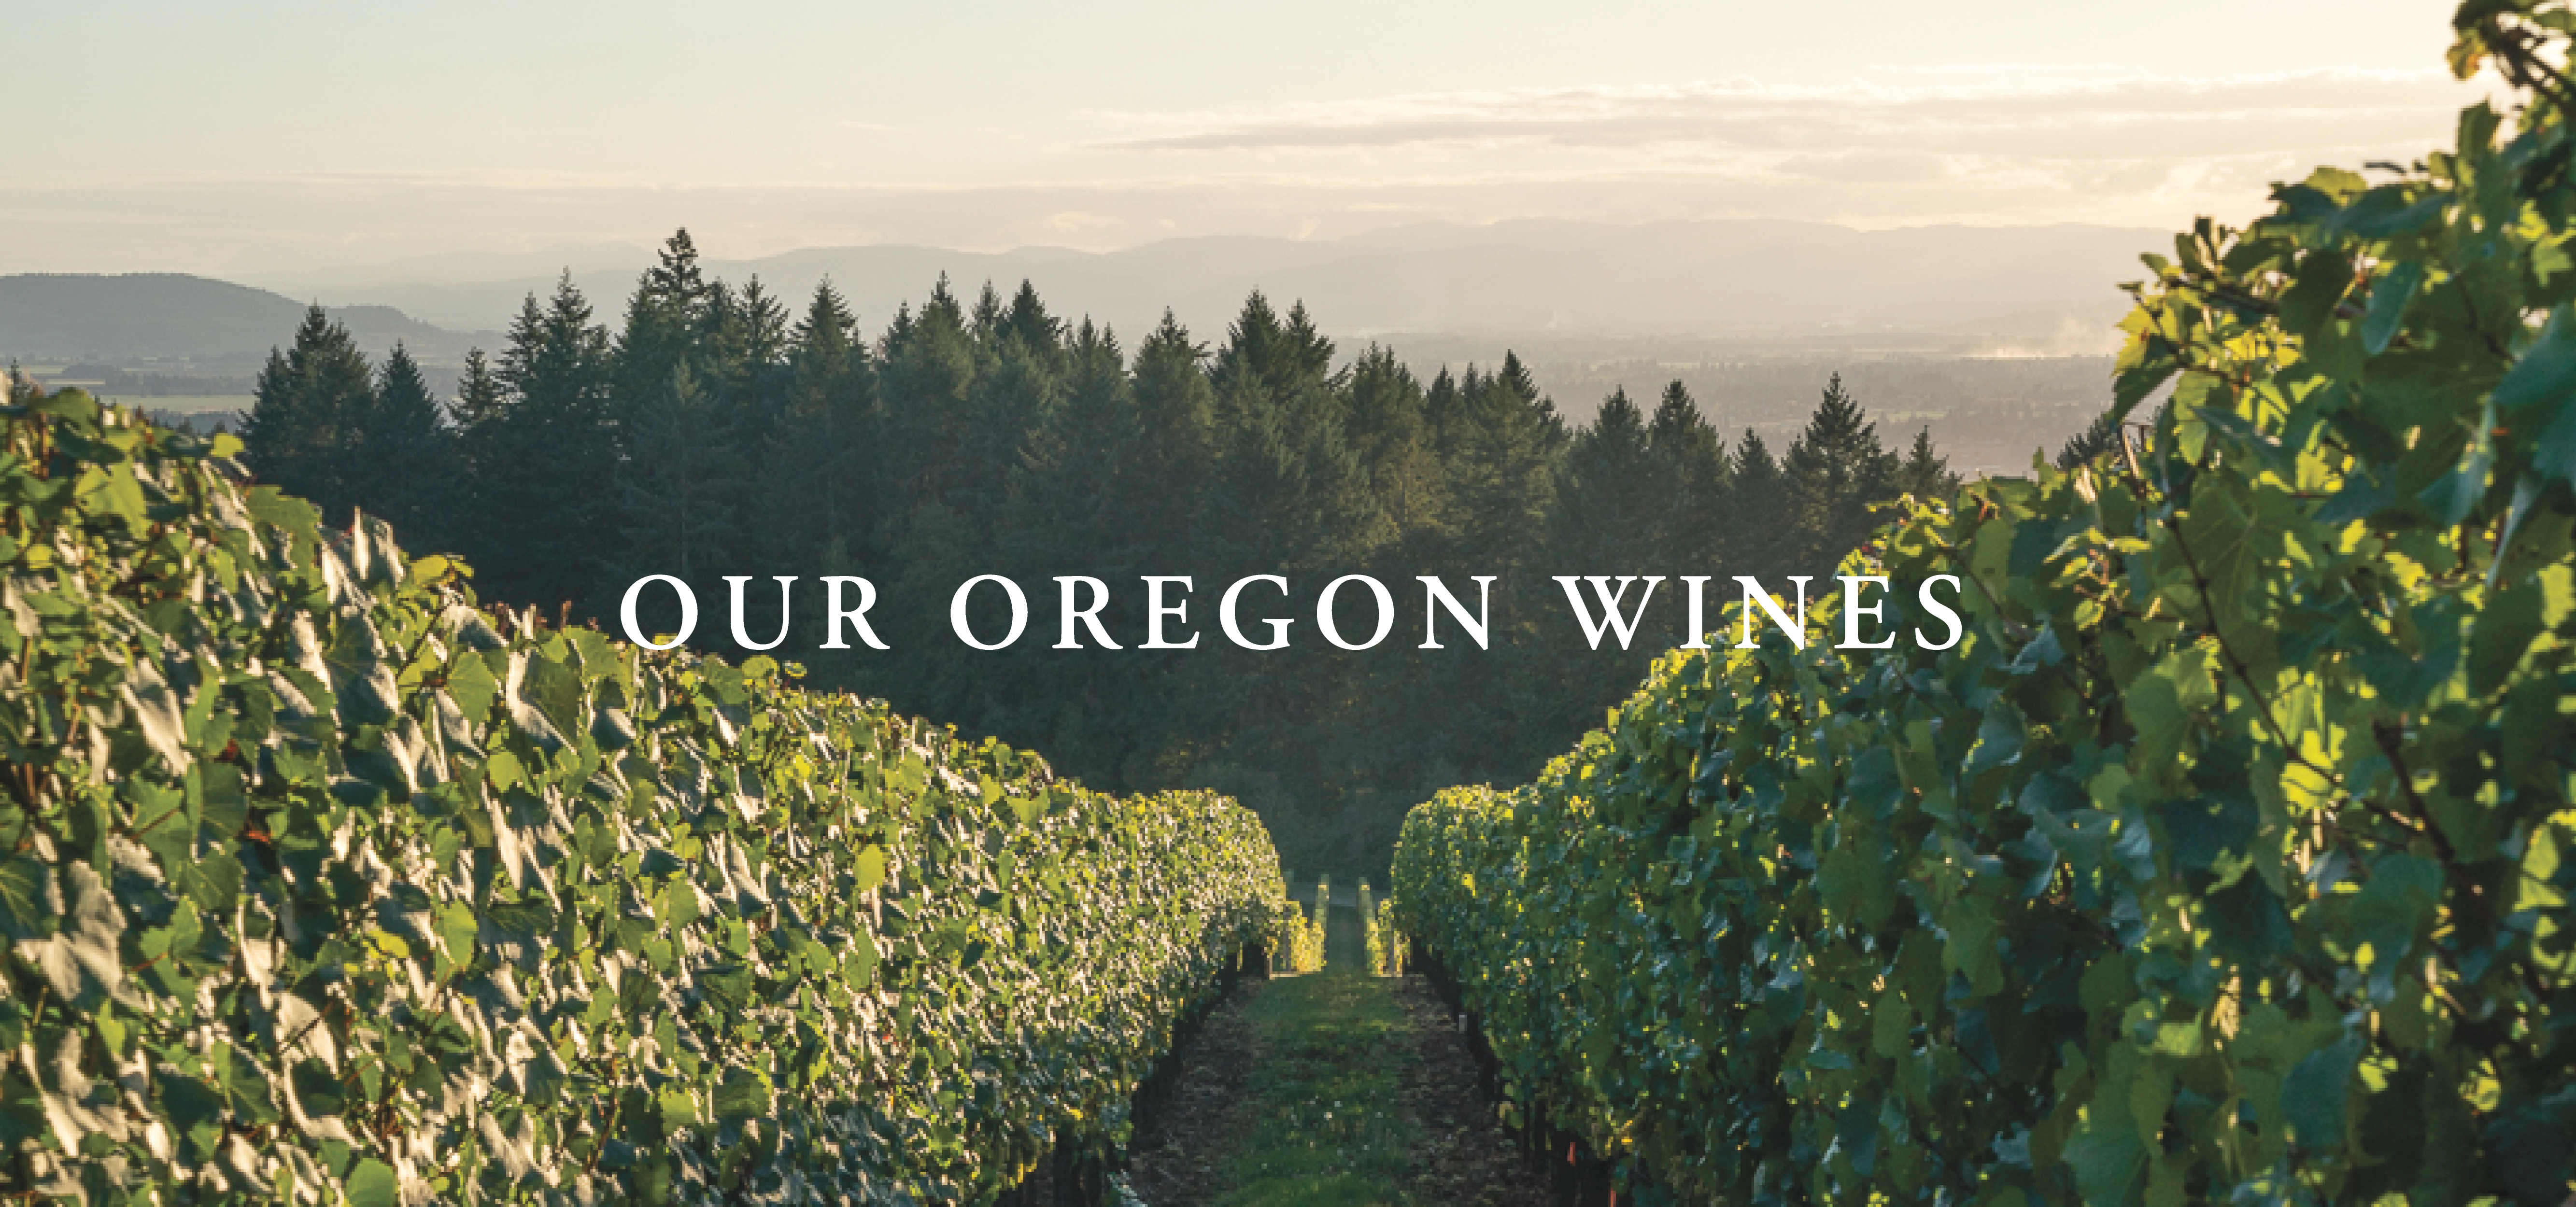 Our Oregon Wines